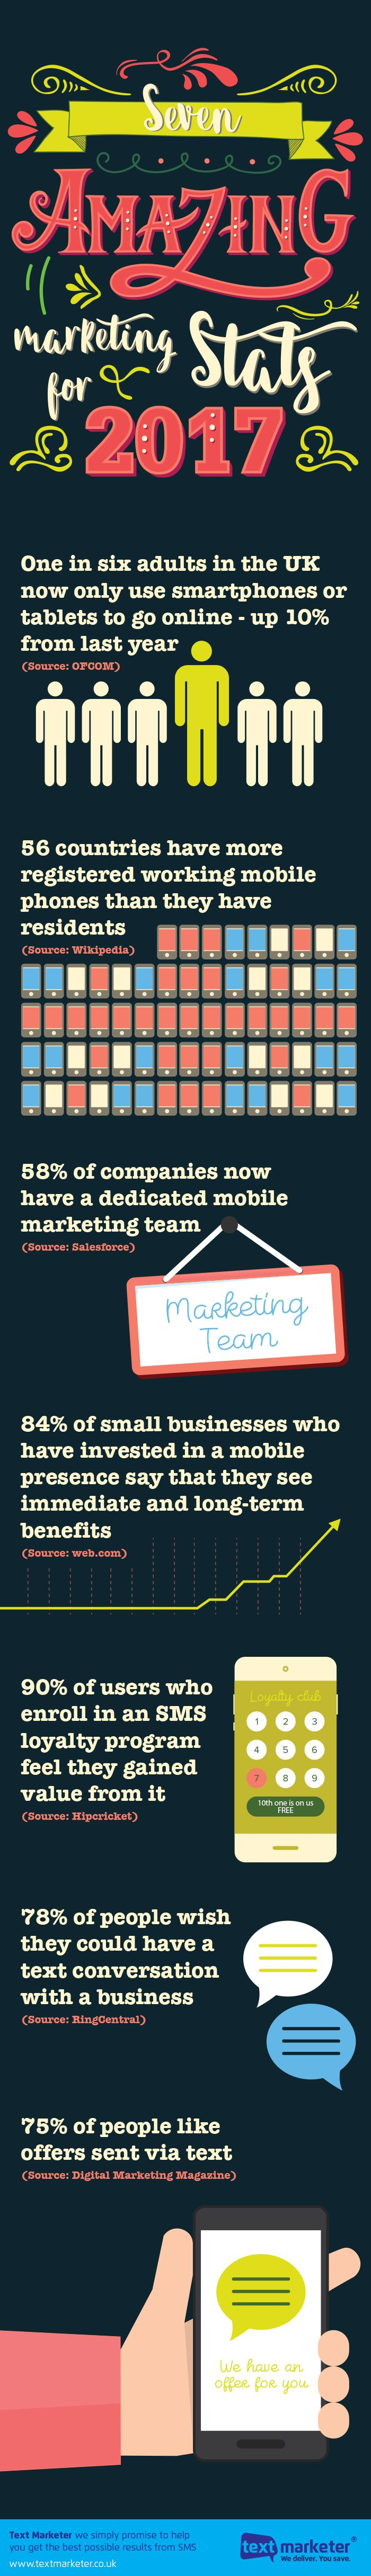 7 Amazing Marketing Stats That Will Make You Change Your 2017 Strategy [Infographic]